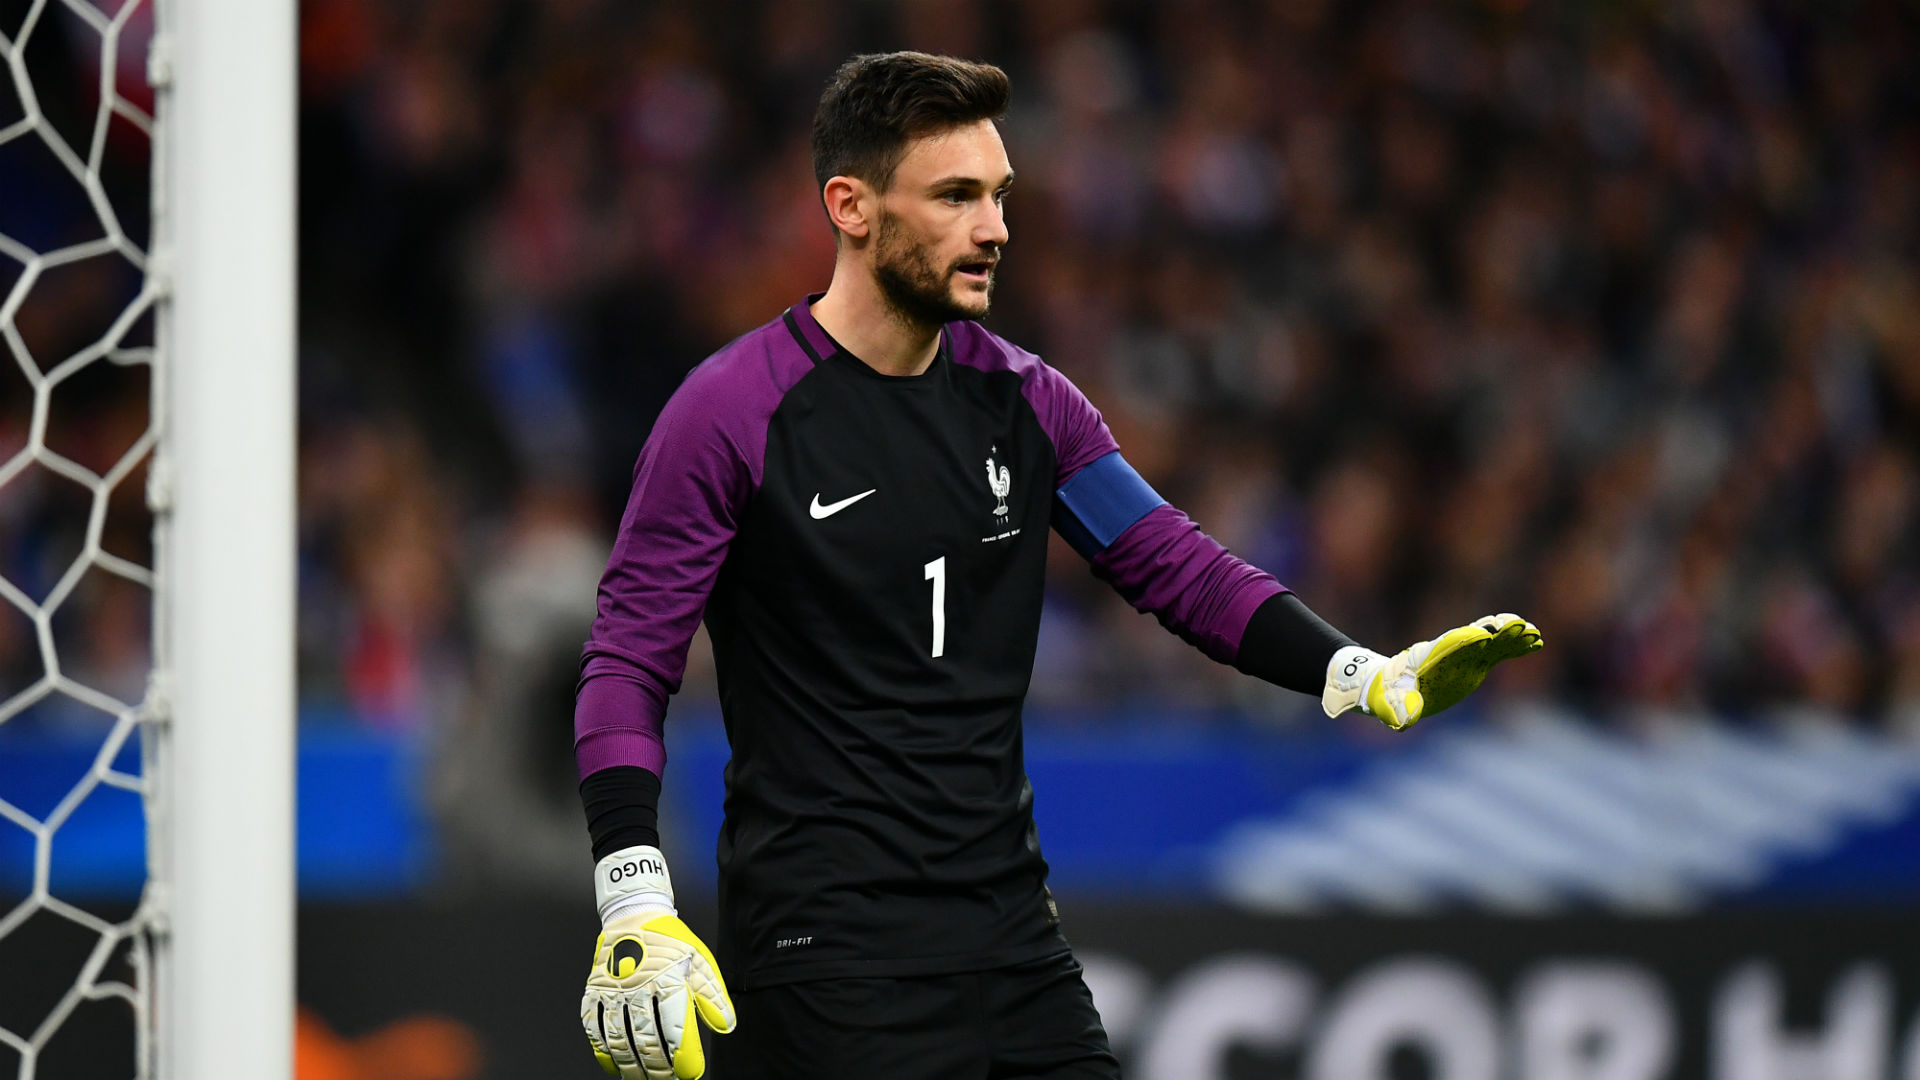 Sweden beats France as Lloris gifts winner